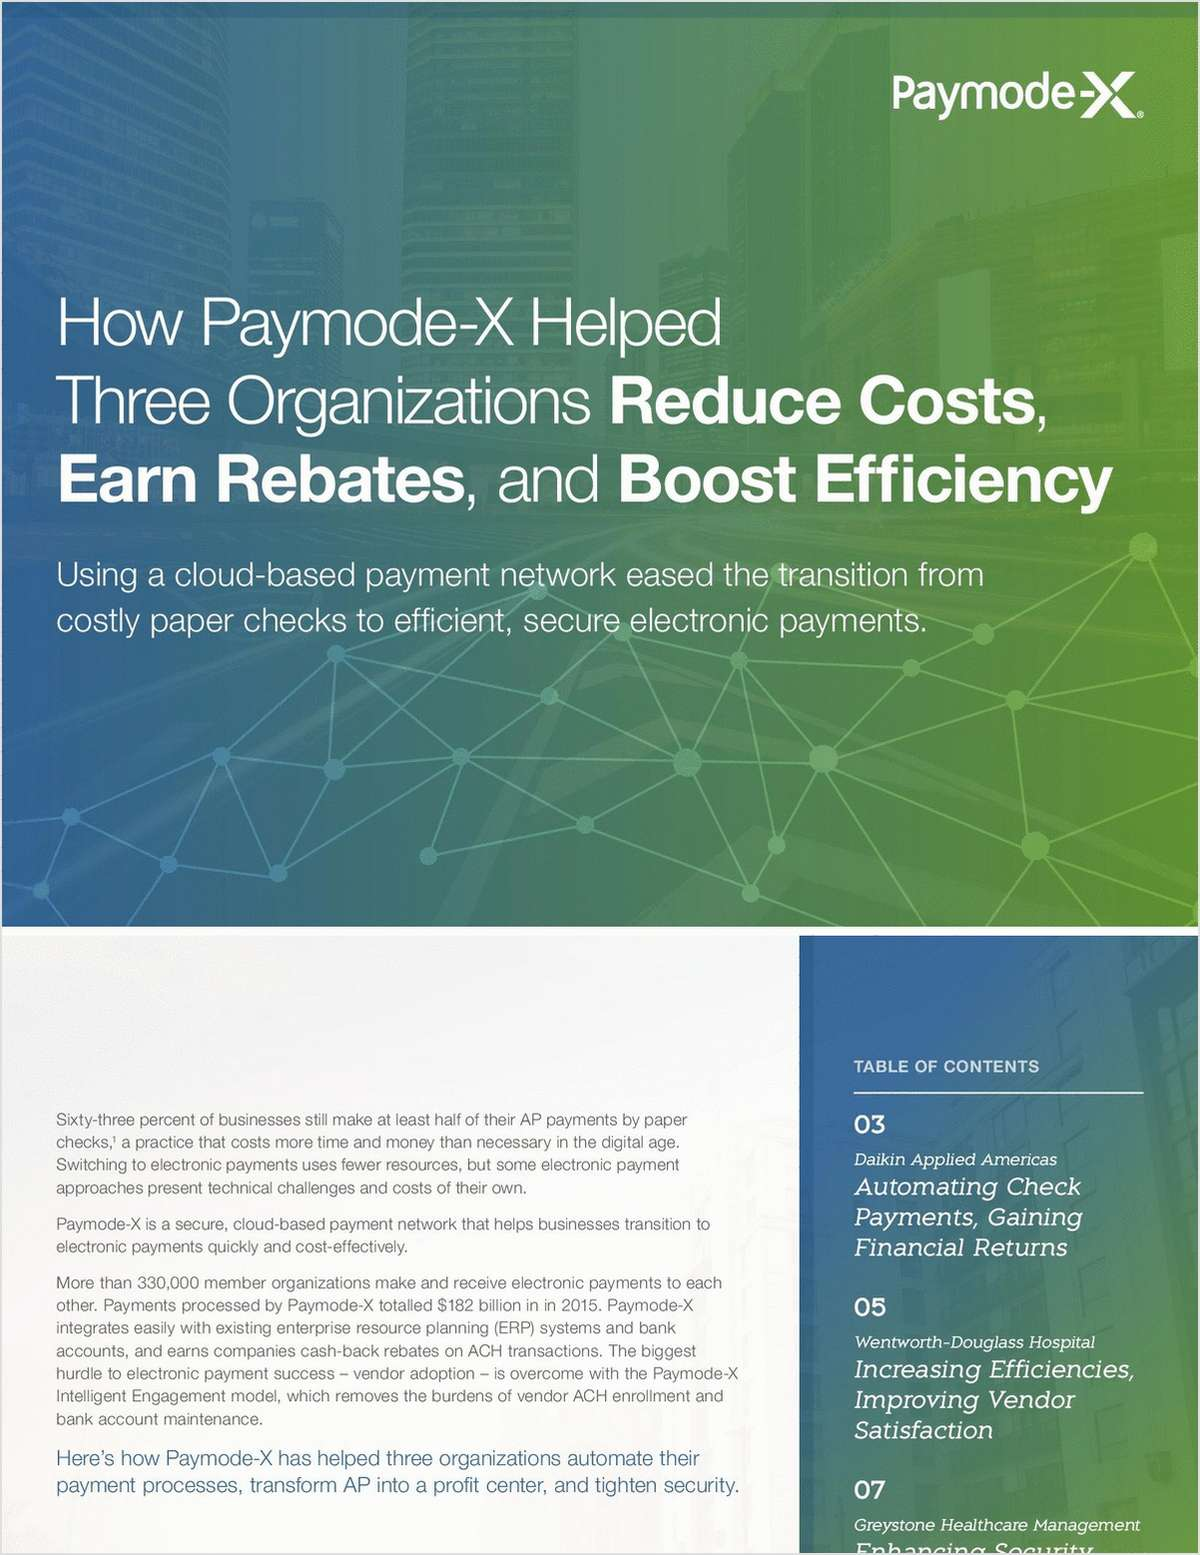 How Paymode-X Helped Three Organizations Reduce Costs, Earn Rebates, and Boost Efficiency